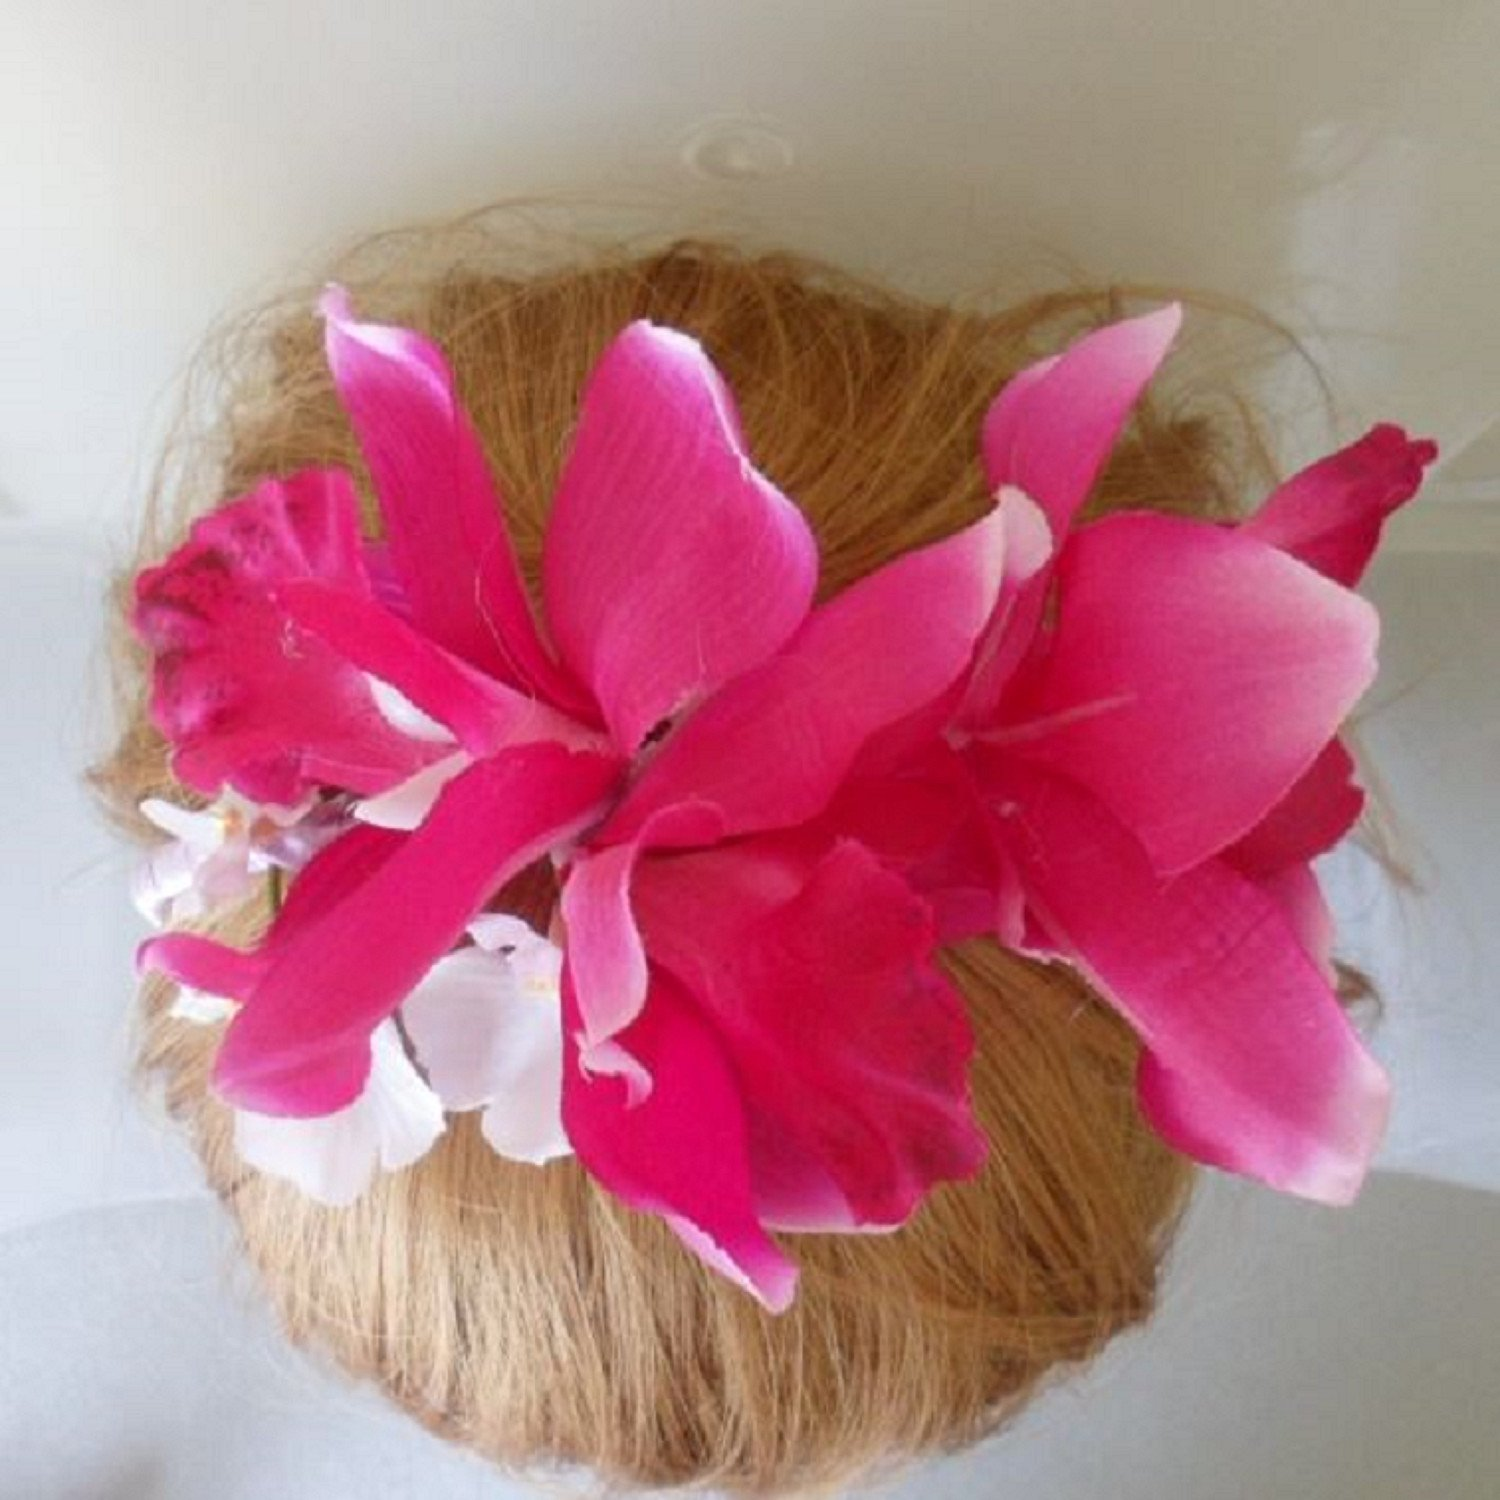 Bridal or Prom Hair Accessories